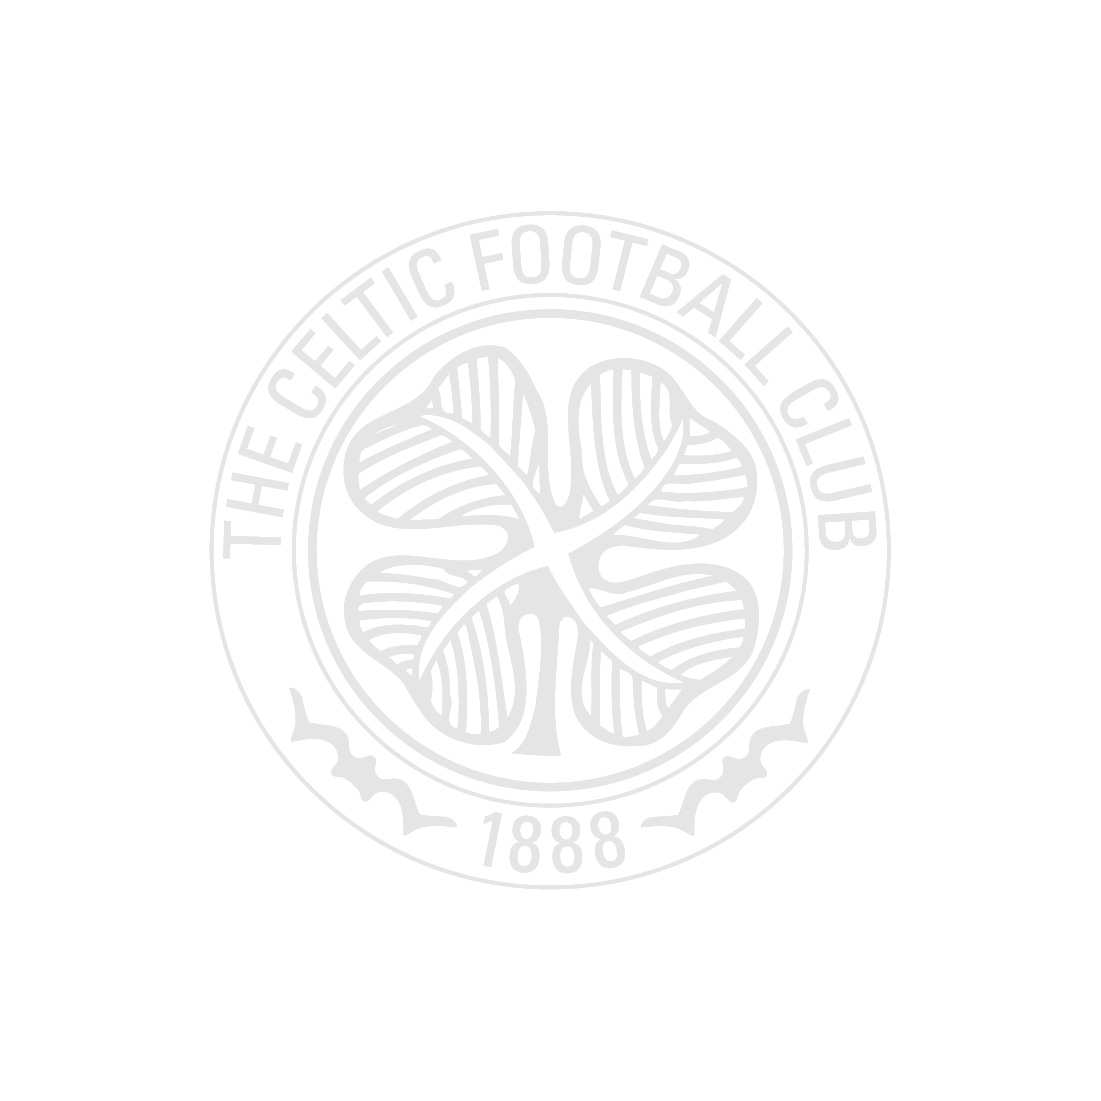 Celtic FC Womens 20/21 Home Shirt with Sponsor